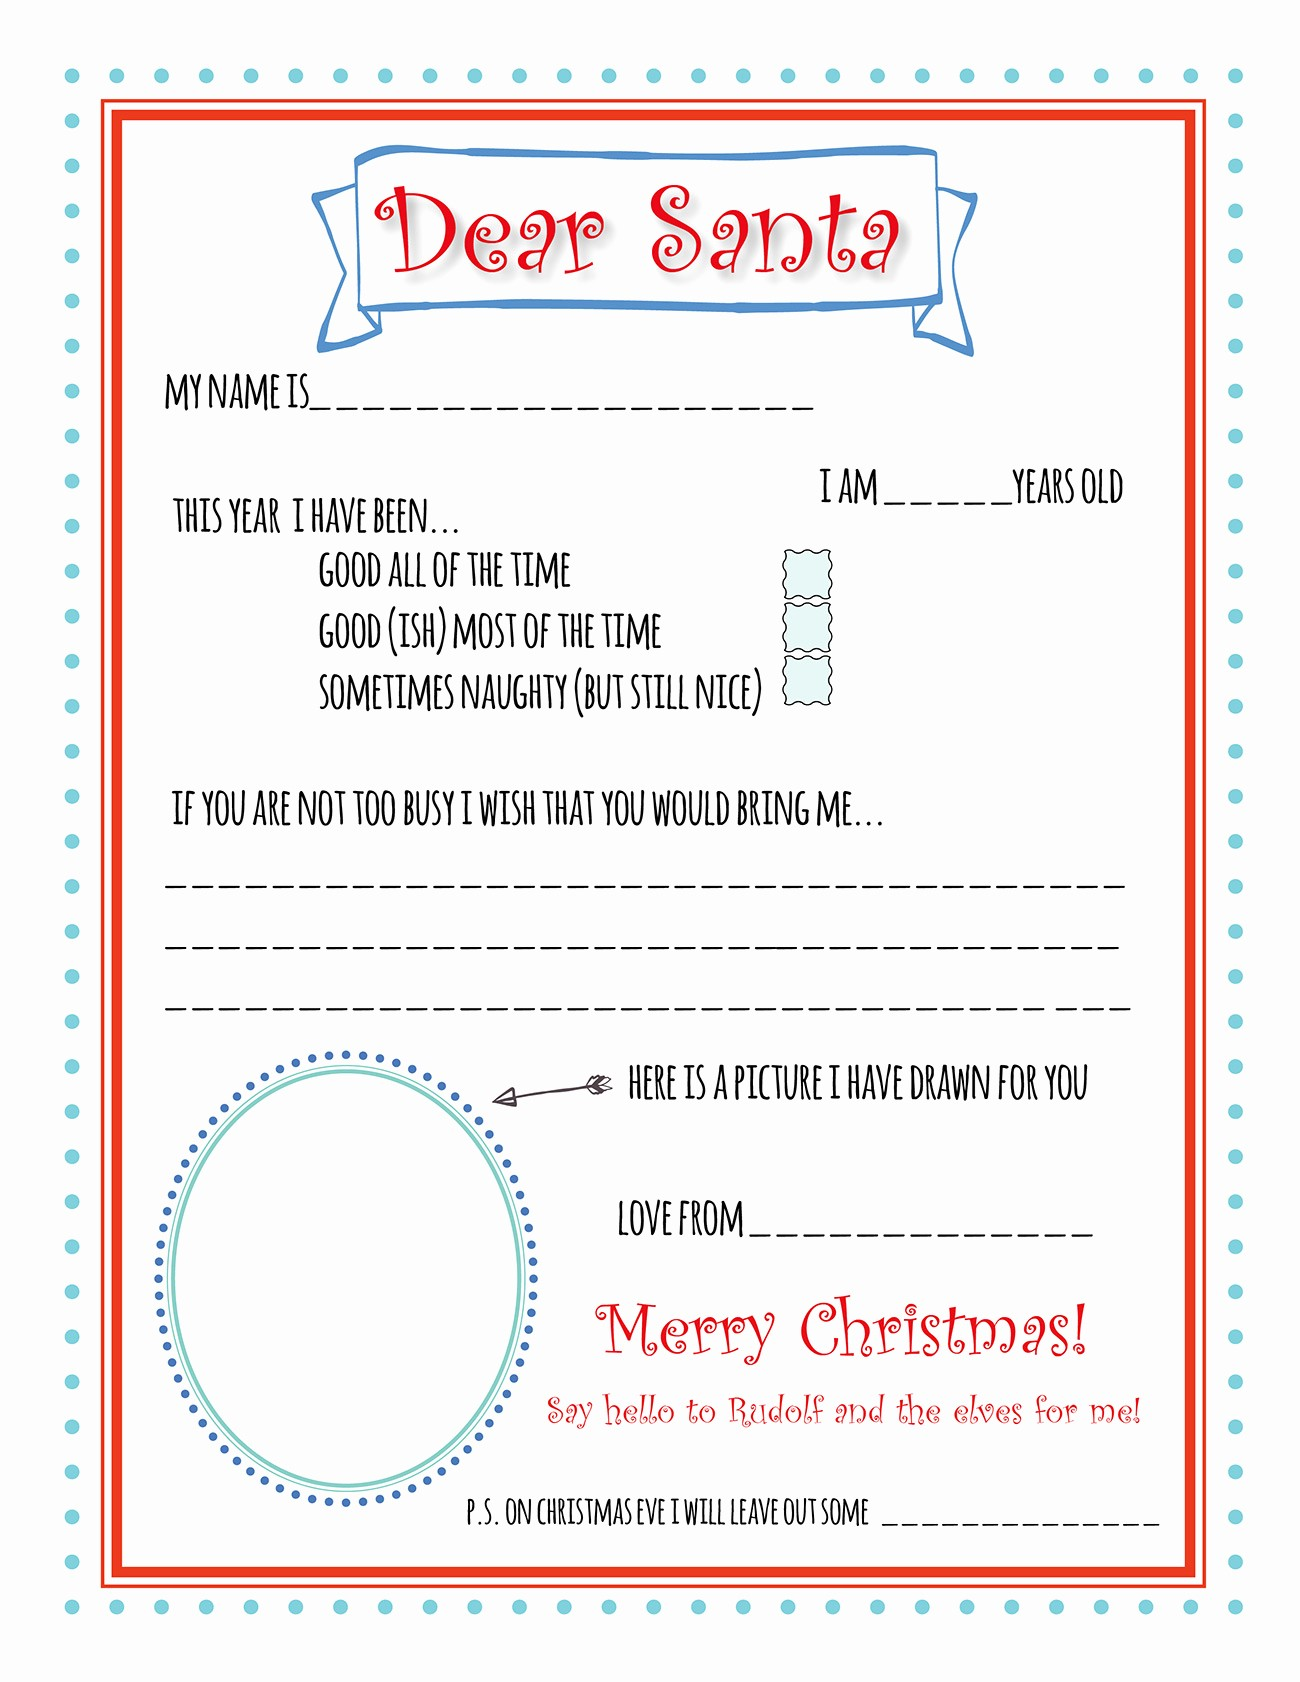 Letter to Santa Claus Templates Elegant Santa Letter Printable Template Bunny Peculiar